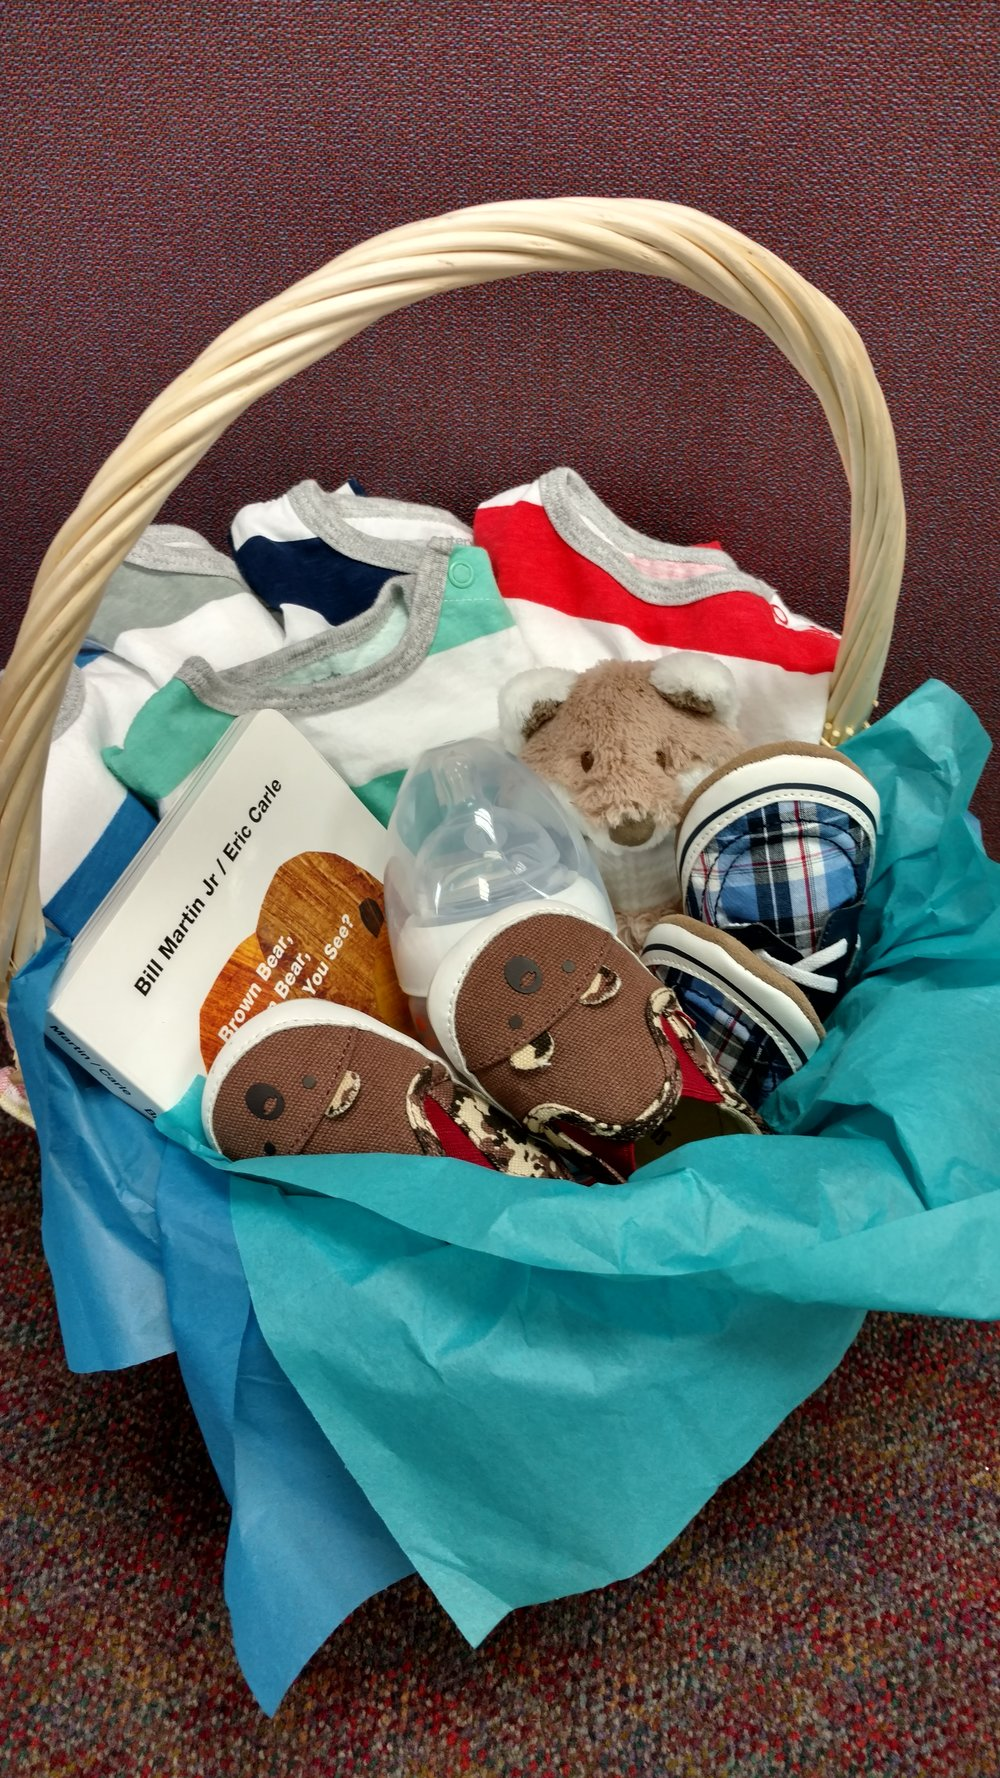 Look at this cute Baby Items Basket someone made this week!